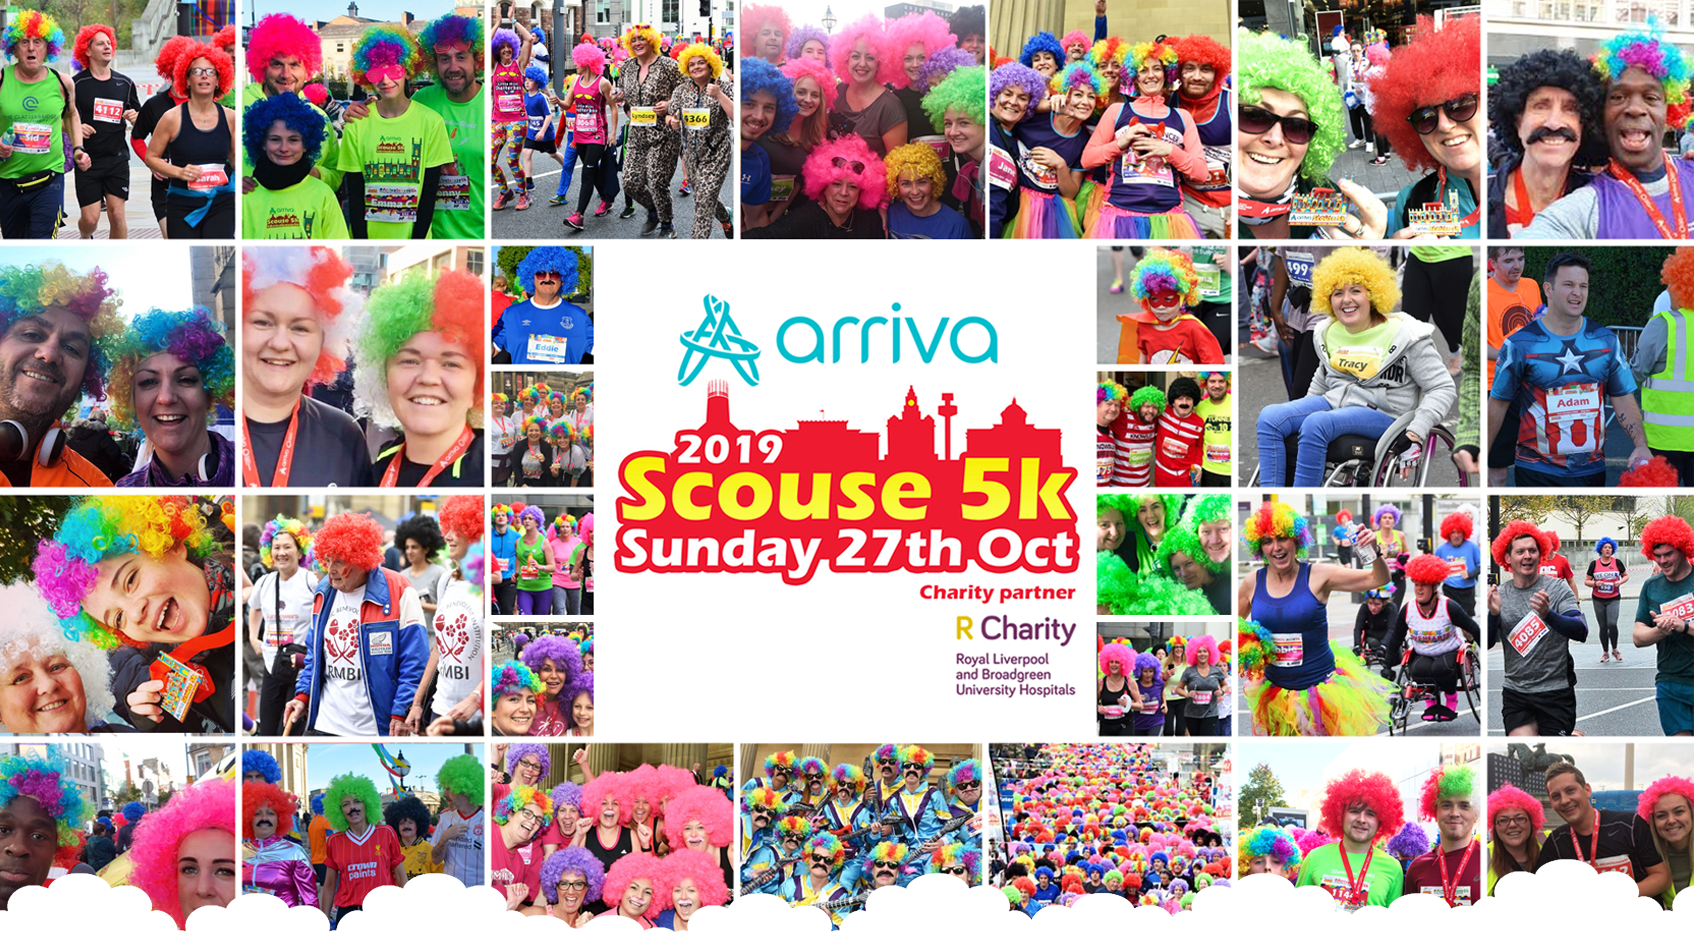 Win tickets to take part in Arriva Scouse 5K!